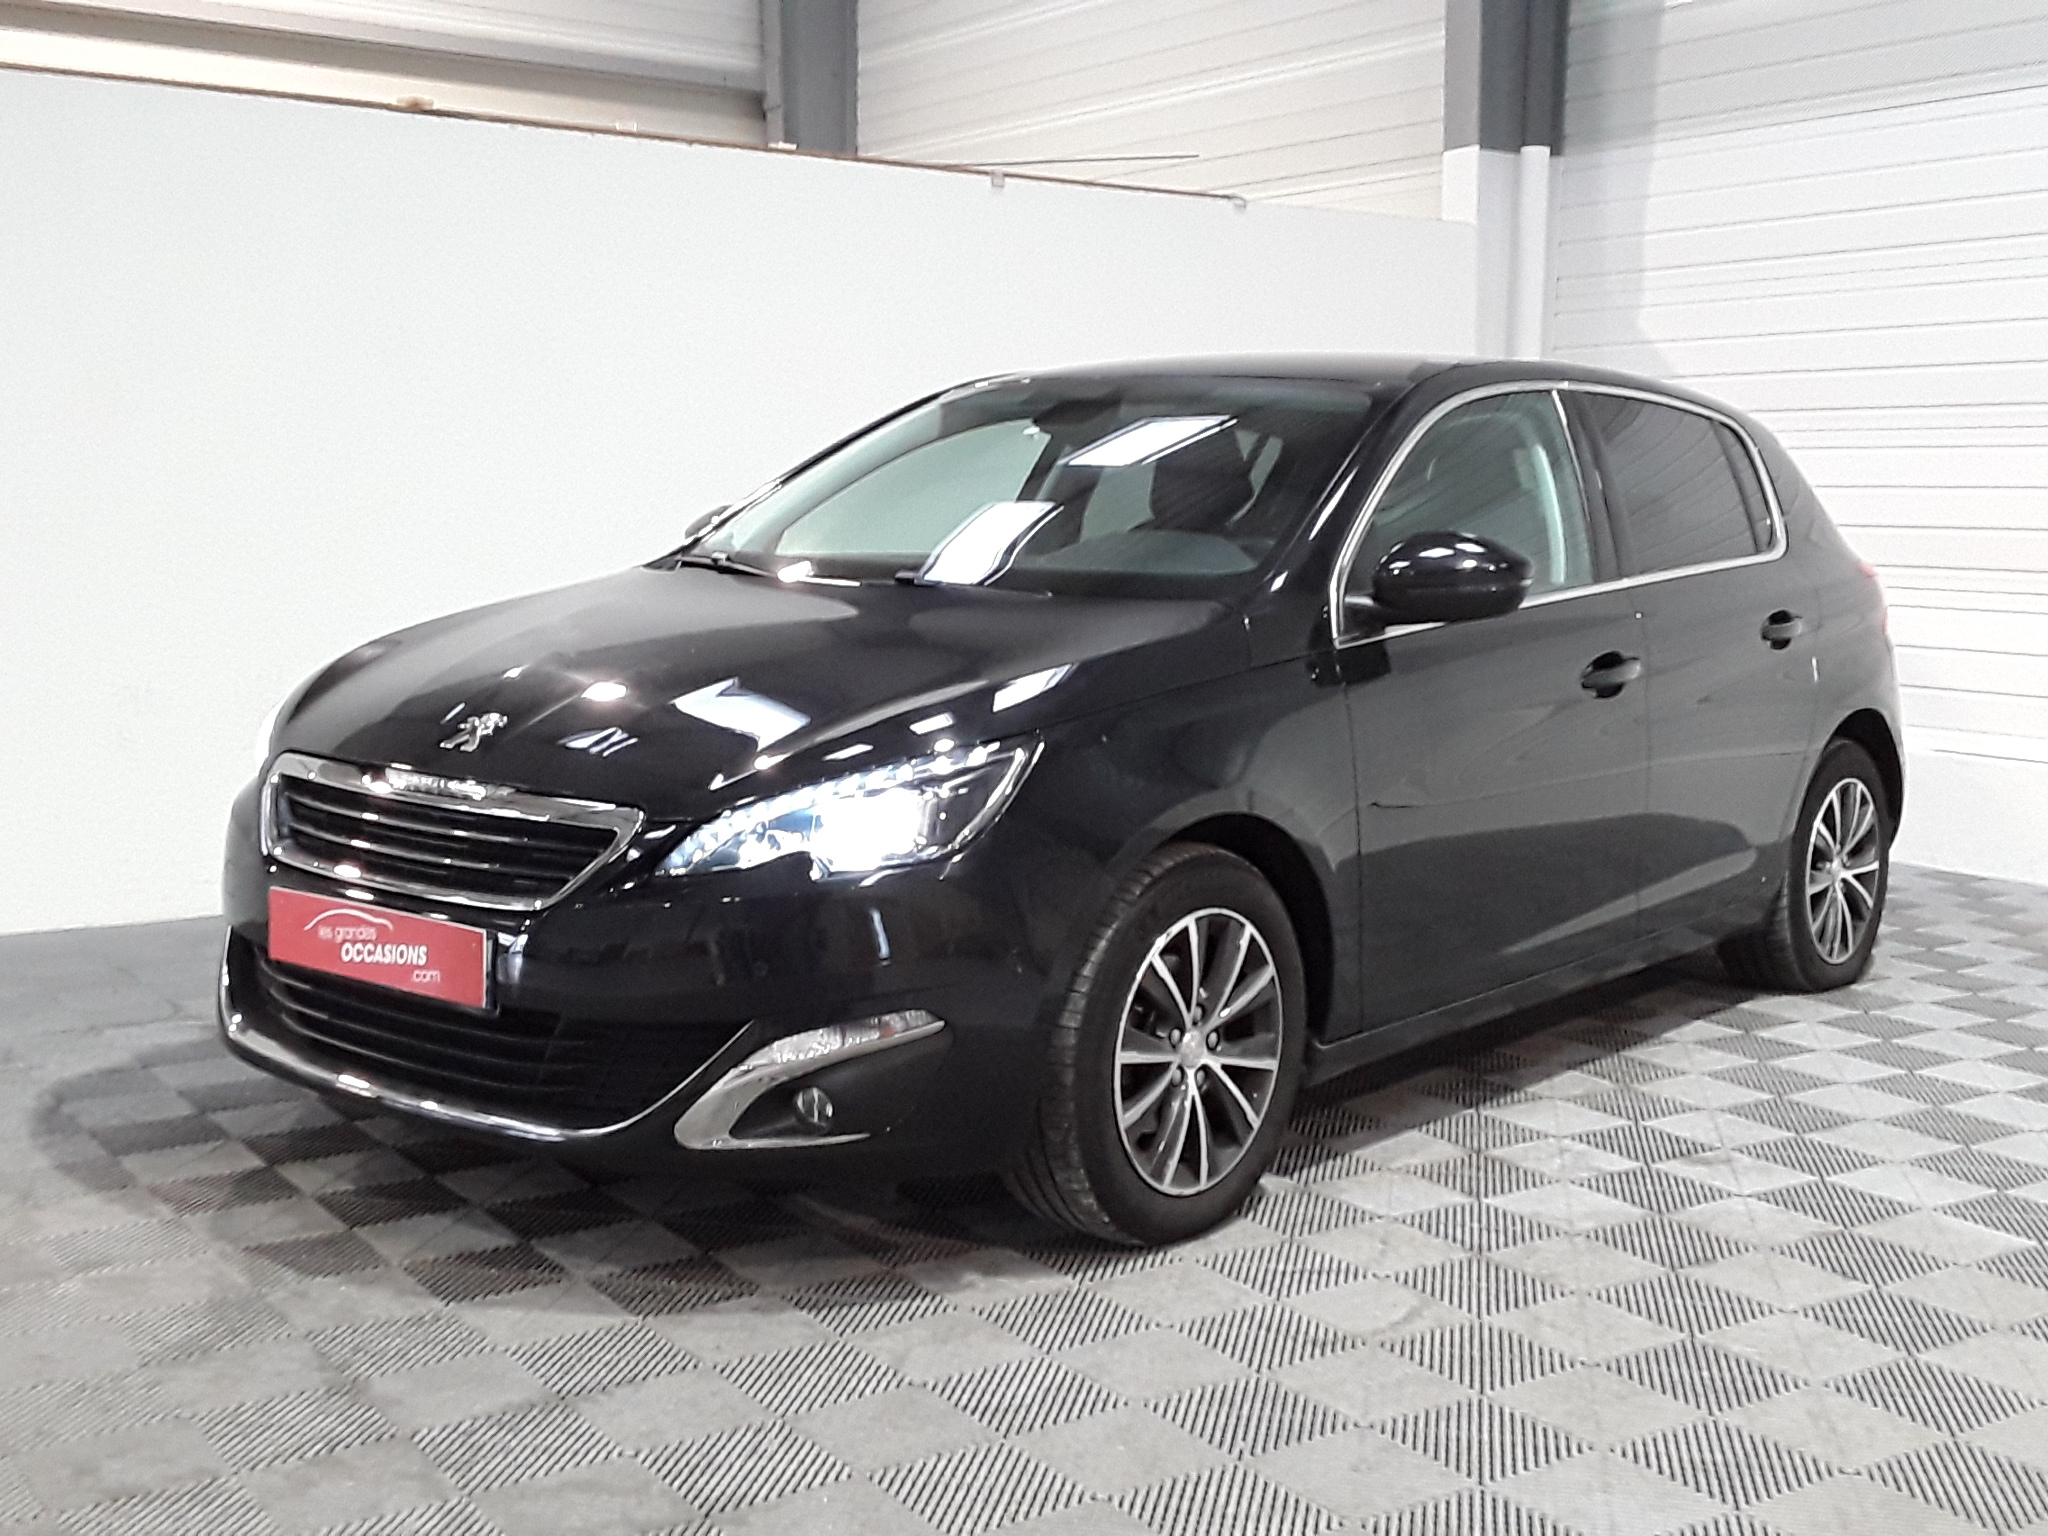 PEUGEOT 308 1.6 Blue HDI 120 ALLURE d'occasion